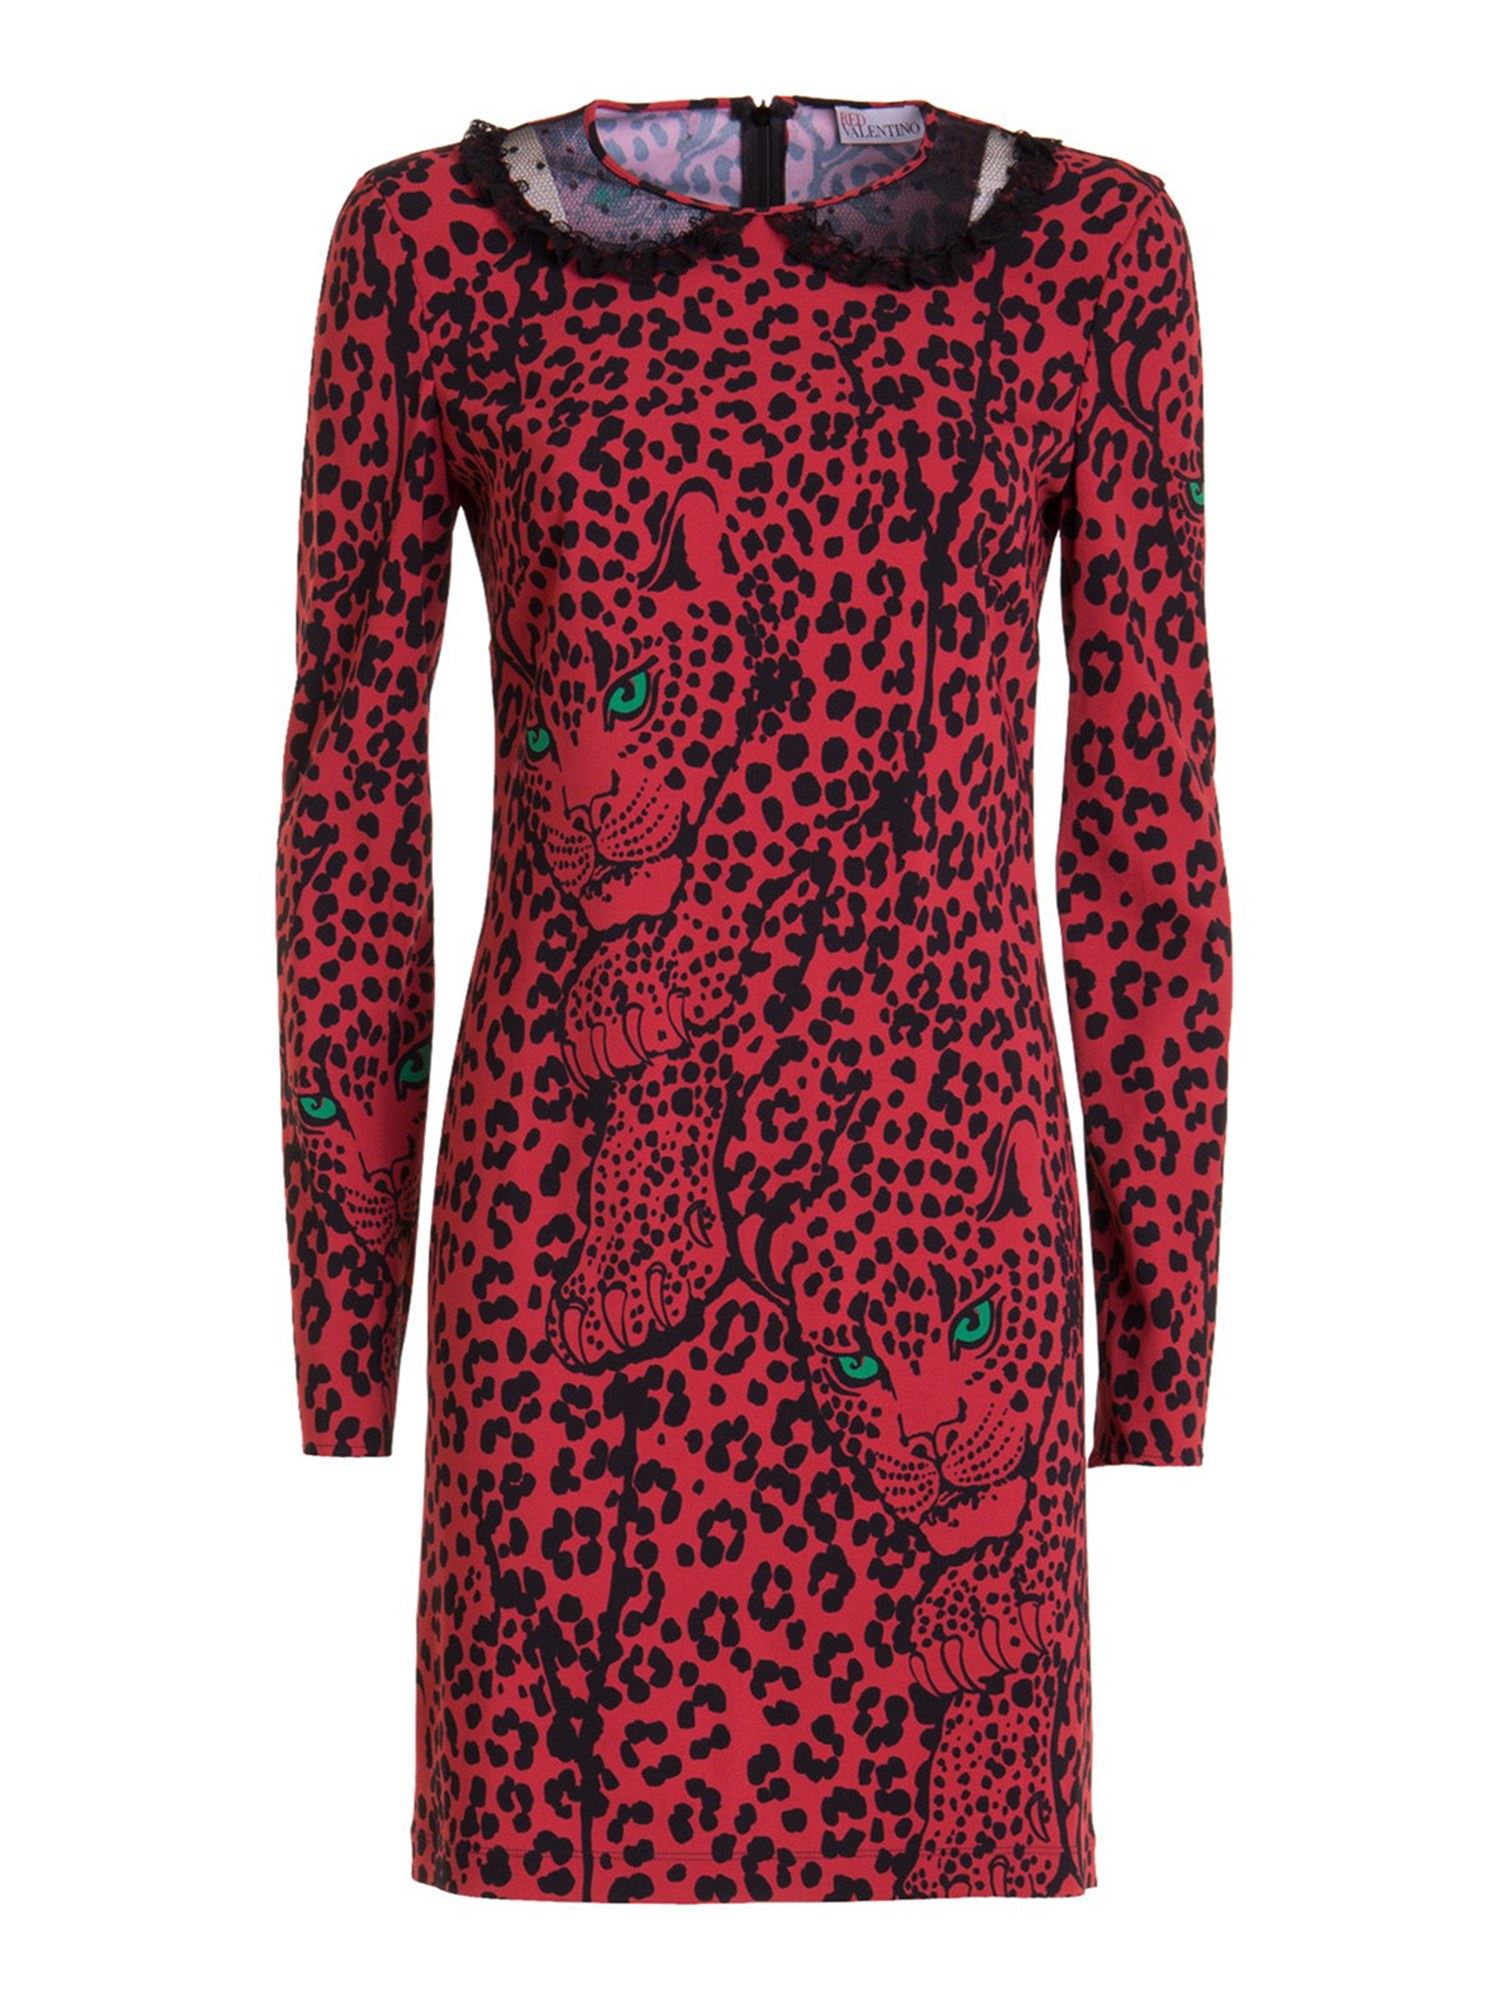 Red Valentino LEO PANTHER PRINT STRETCH VISCOSE DRESS IN RED